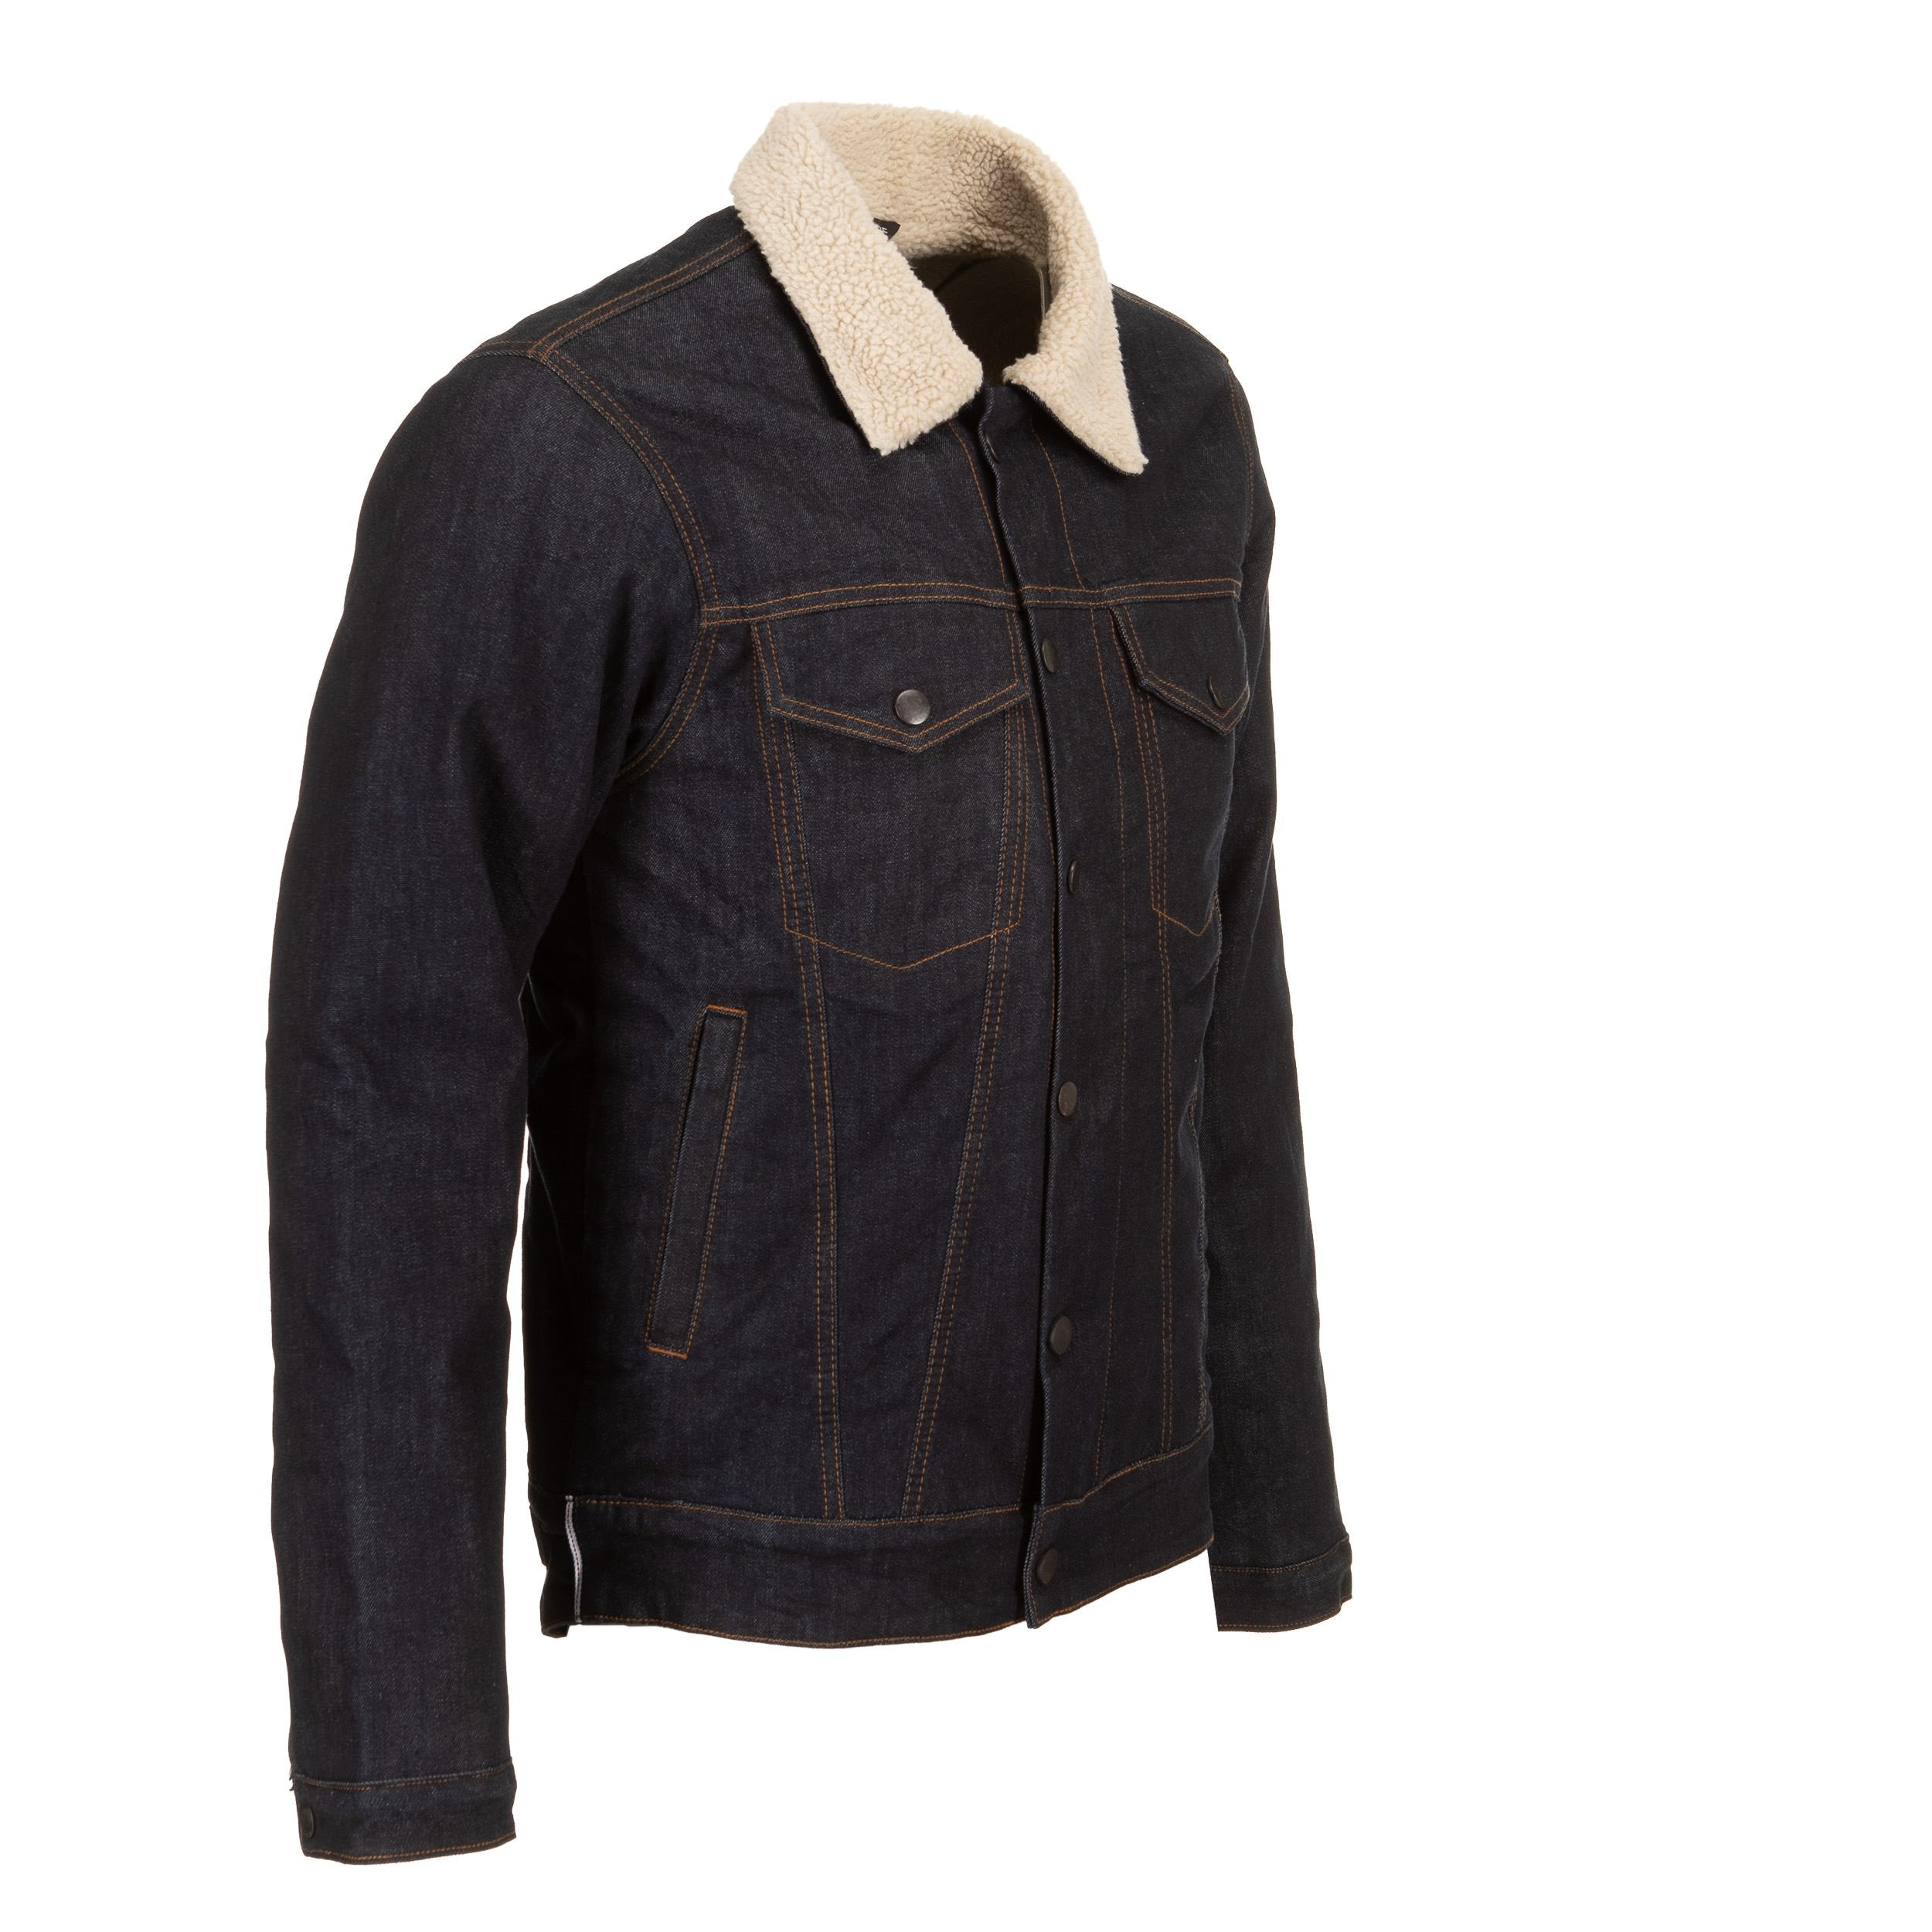 Resurgence Gear 2020 Sherpa Denim PEKEV motorcycle jacket